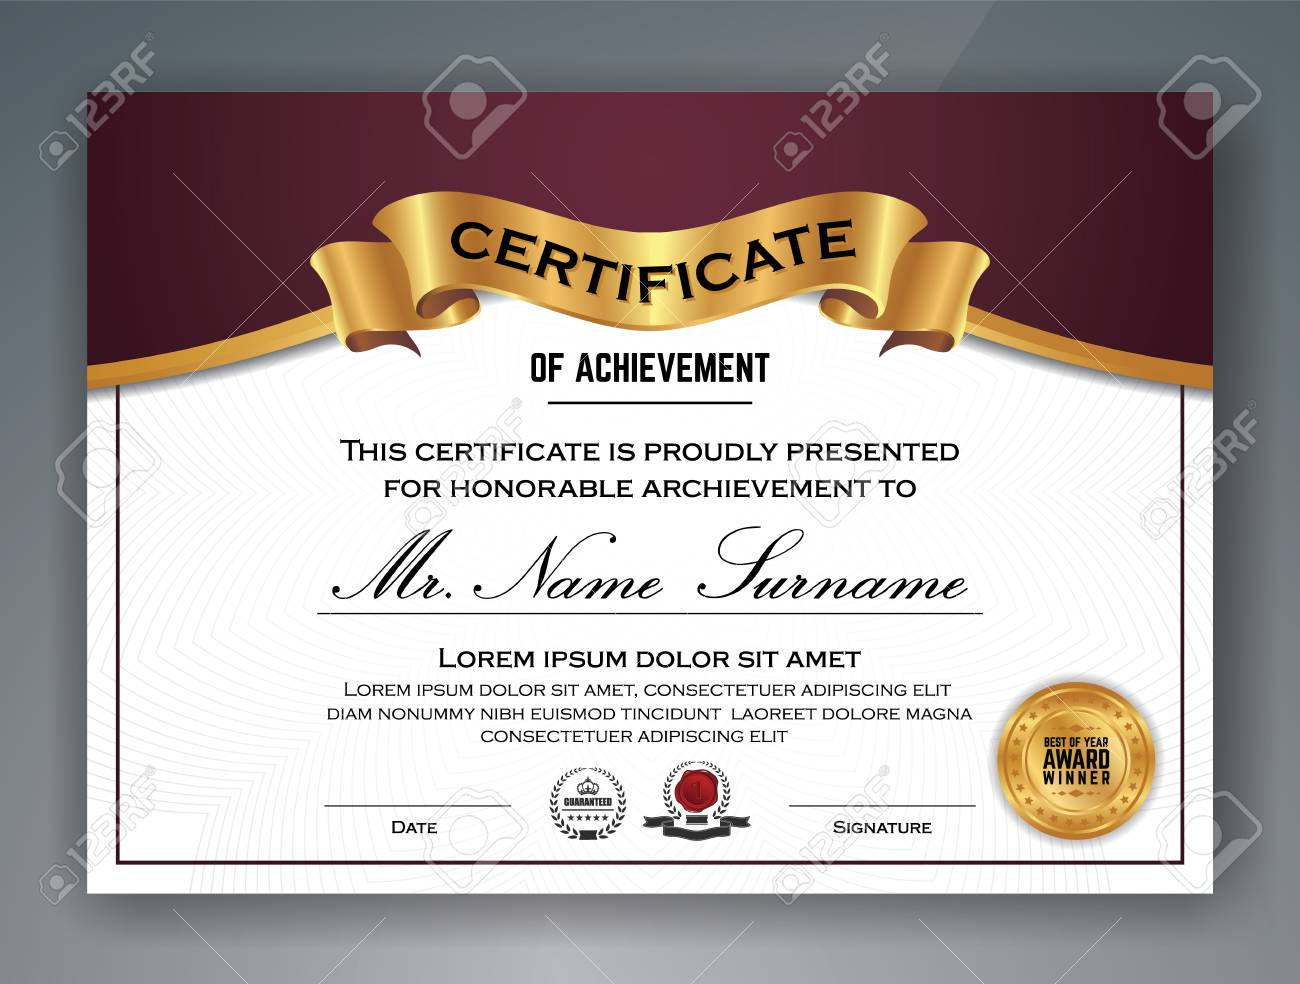 Multipurpose professional certificate template design for print multipurpose professional certificate template design for print vector illustration stock vector 78661151 yadclub Images